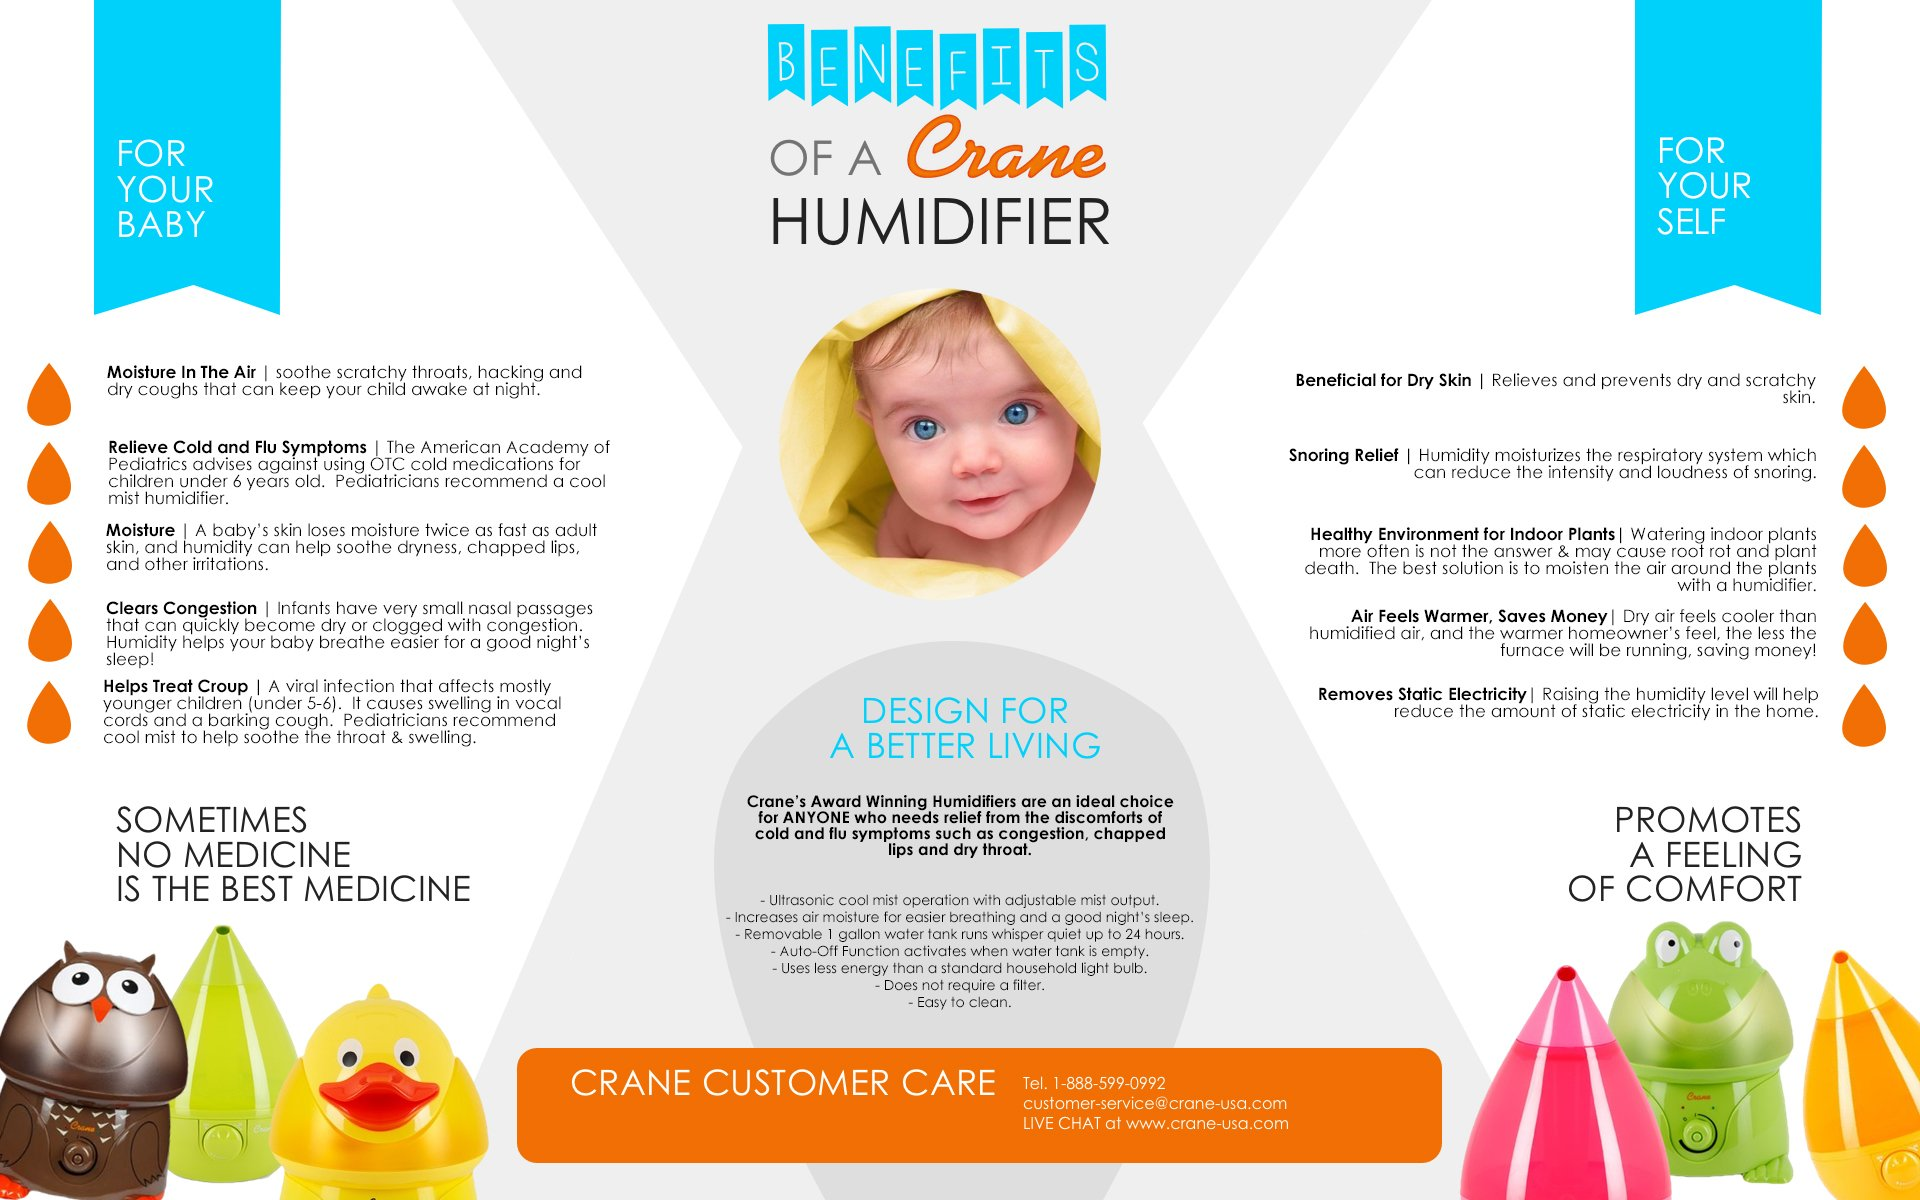 Benefits of a Crane Humidifier